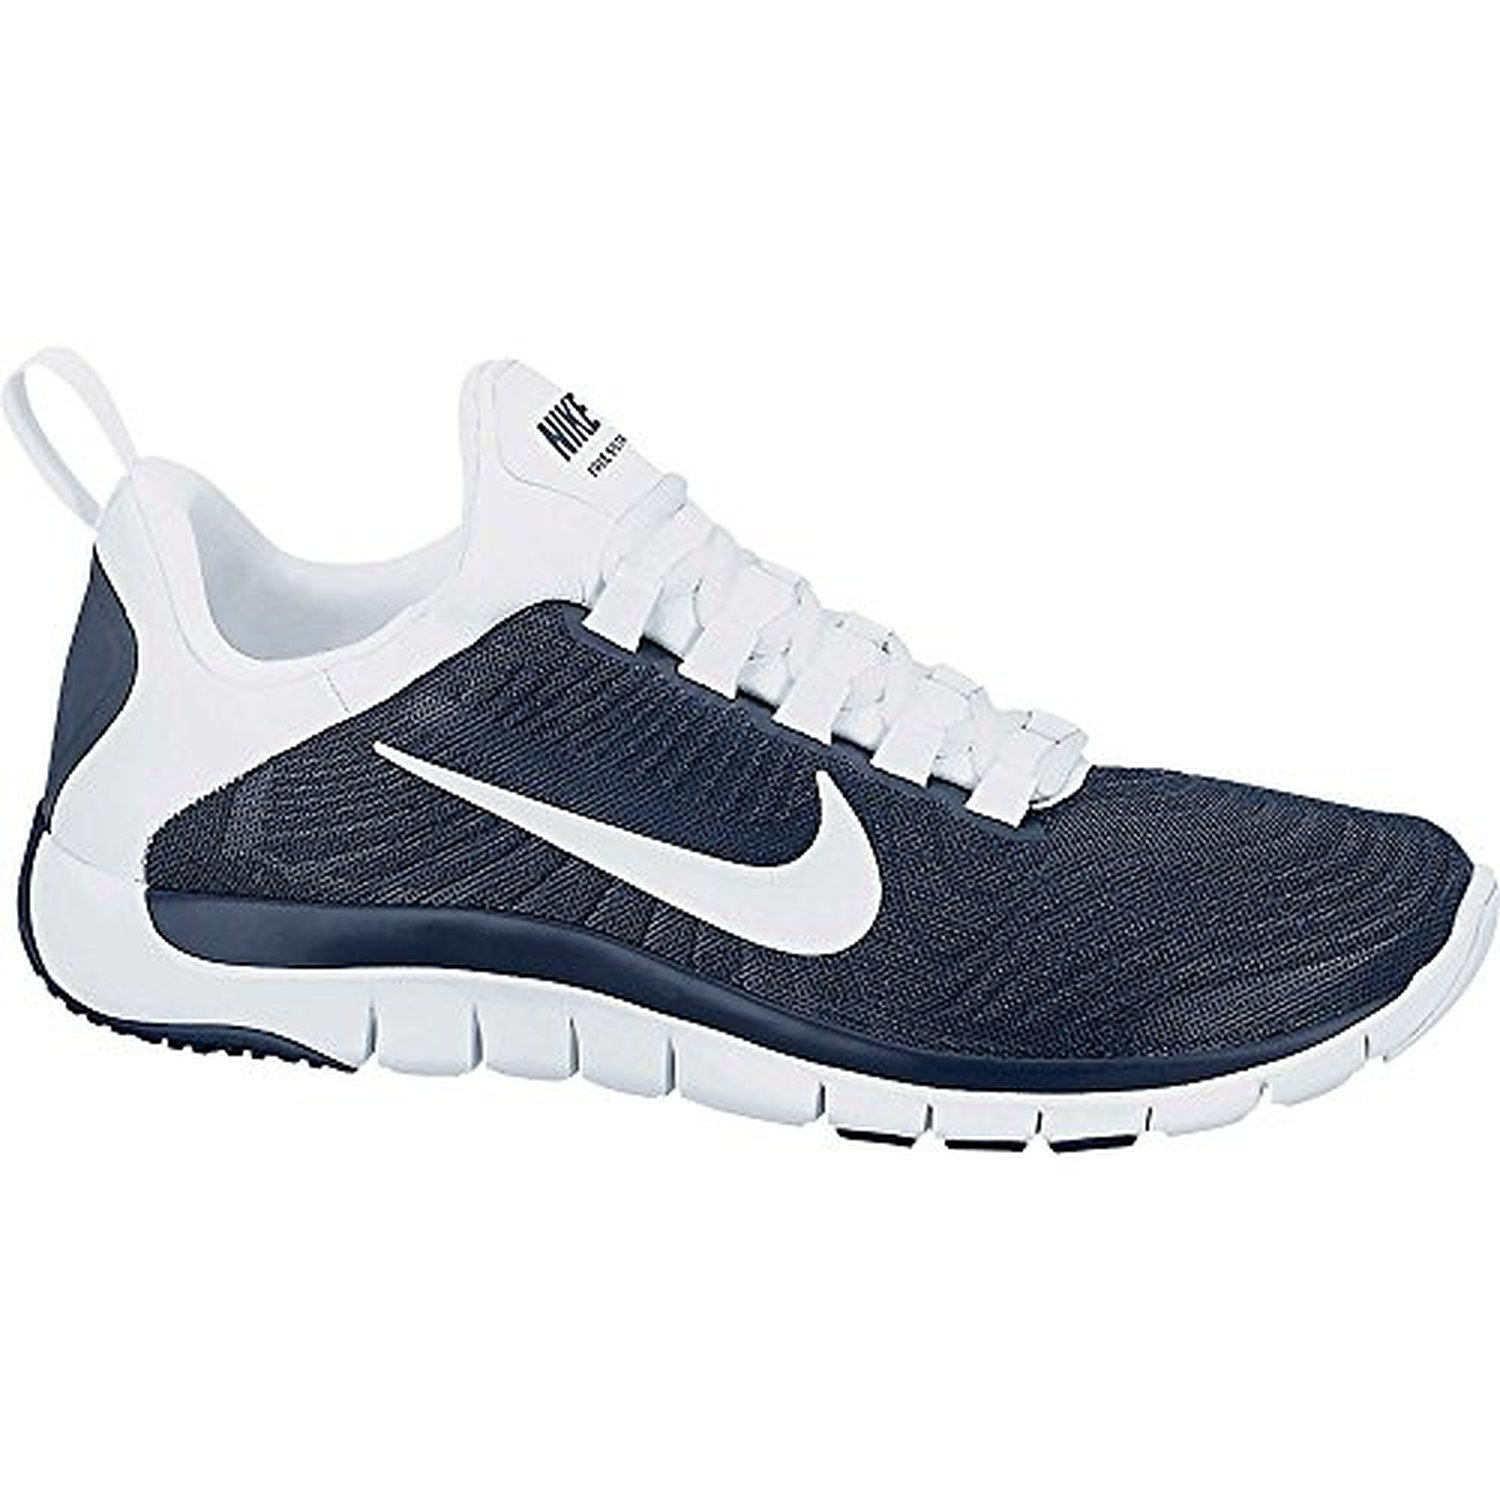 Top 10 Best Nike Free Trainer 5.0 Models   Reviews of 2019  22bb63841